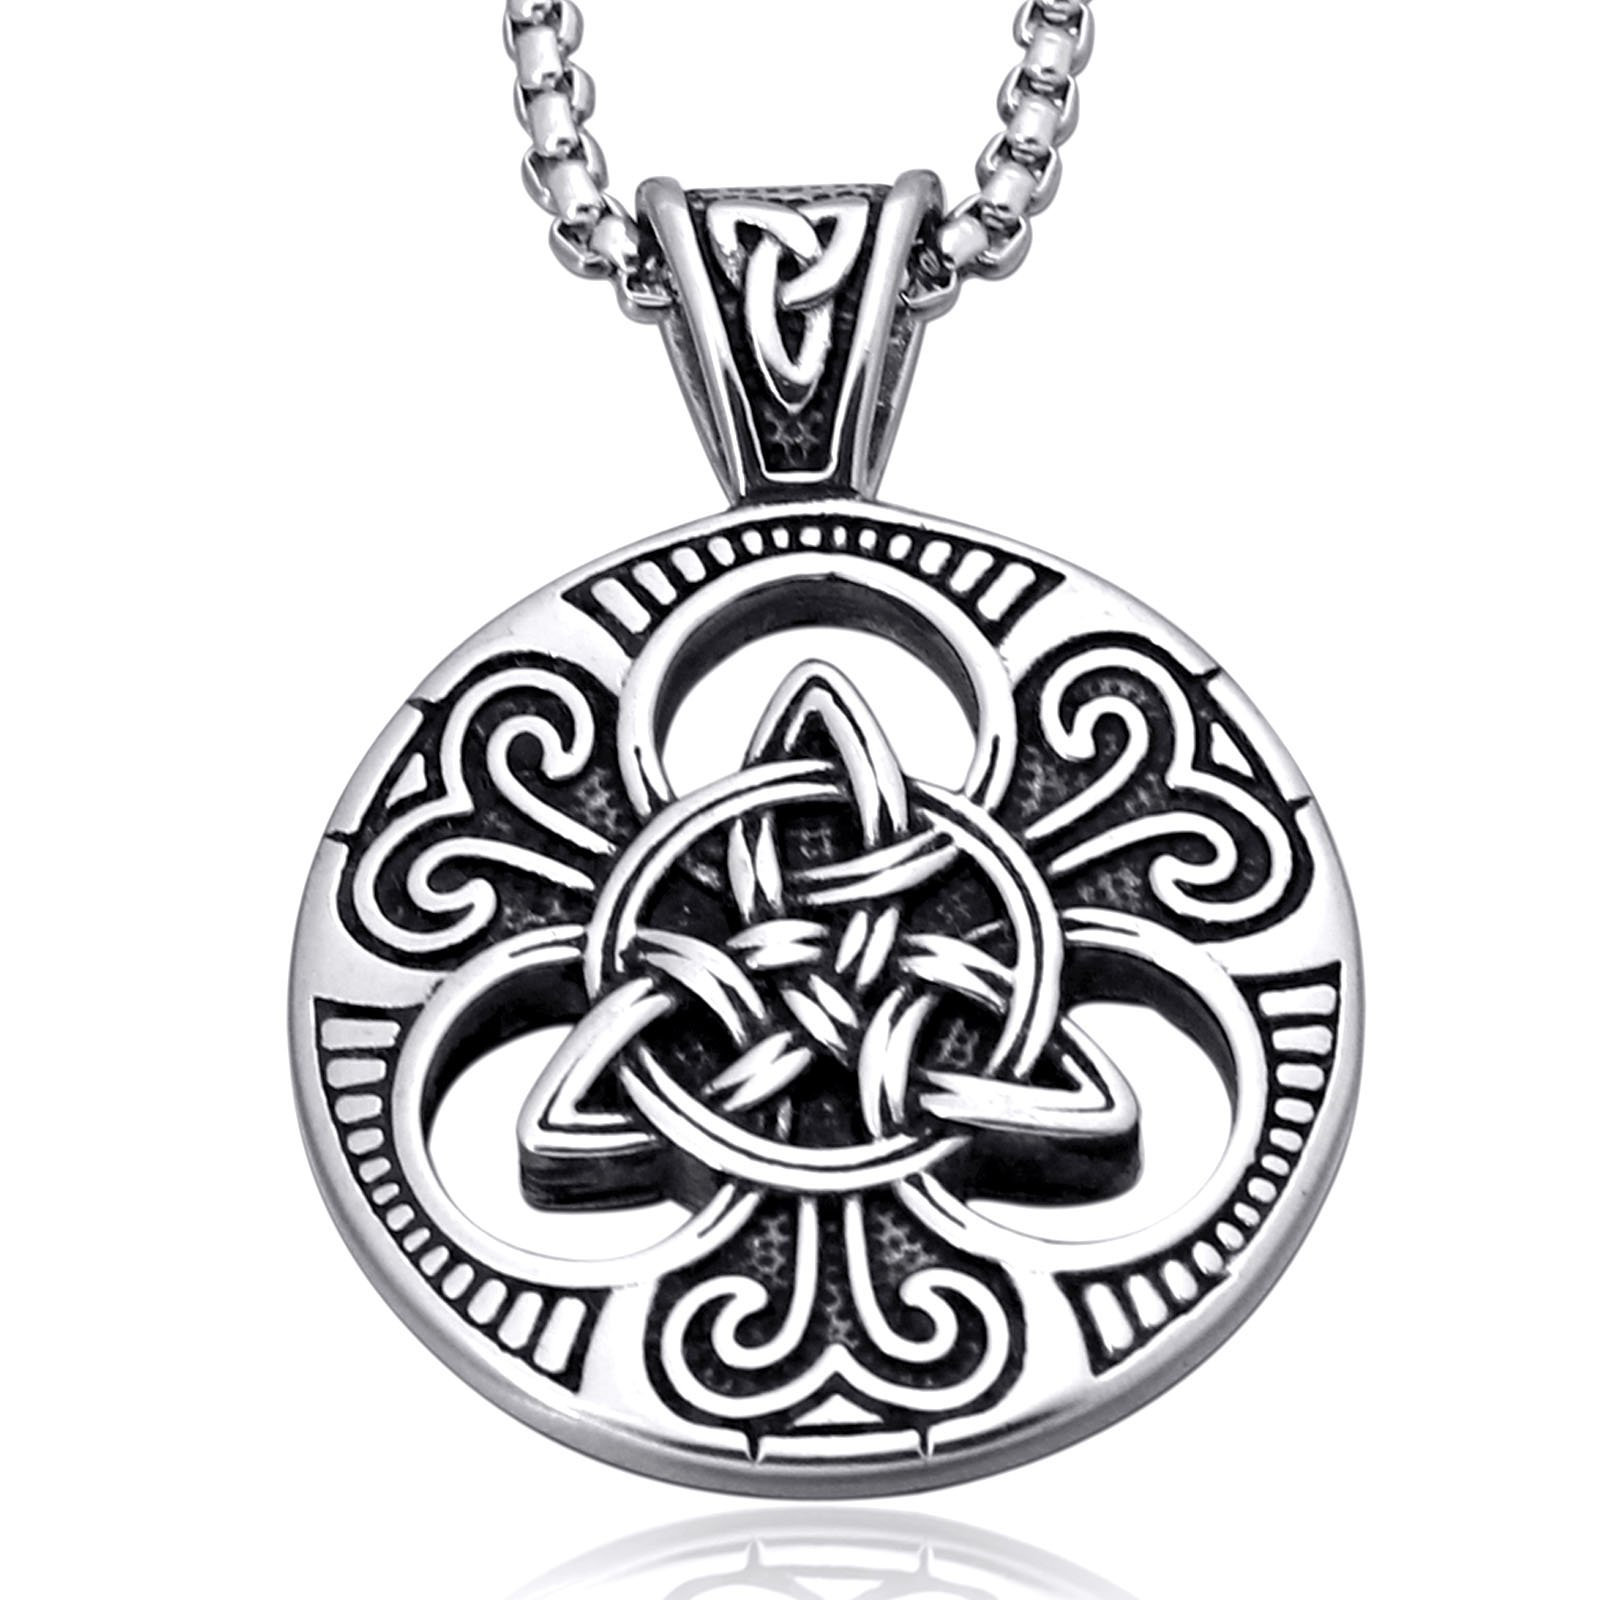 Mens Women's Celtic Knot Magic Double Side Solid Heavy Pendant Necklace Men's Stainless Steel Box Chain Jewelry Length 23.6 inches